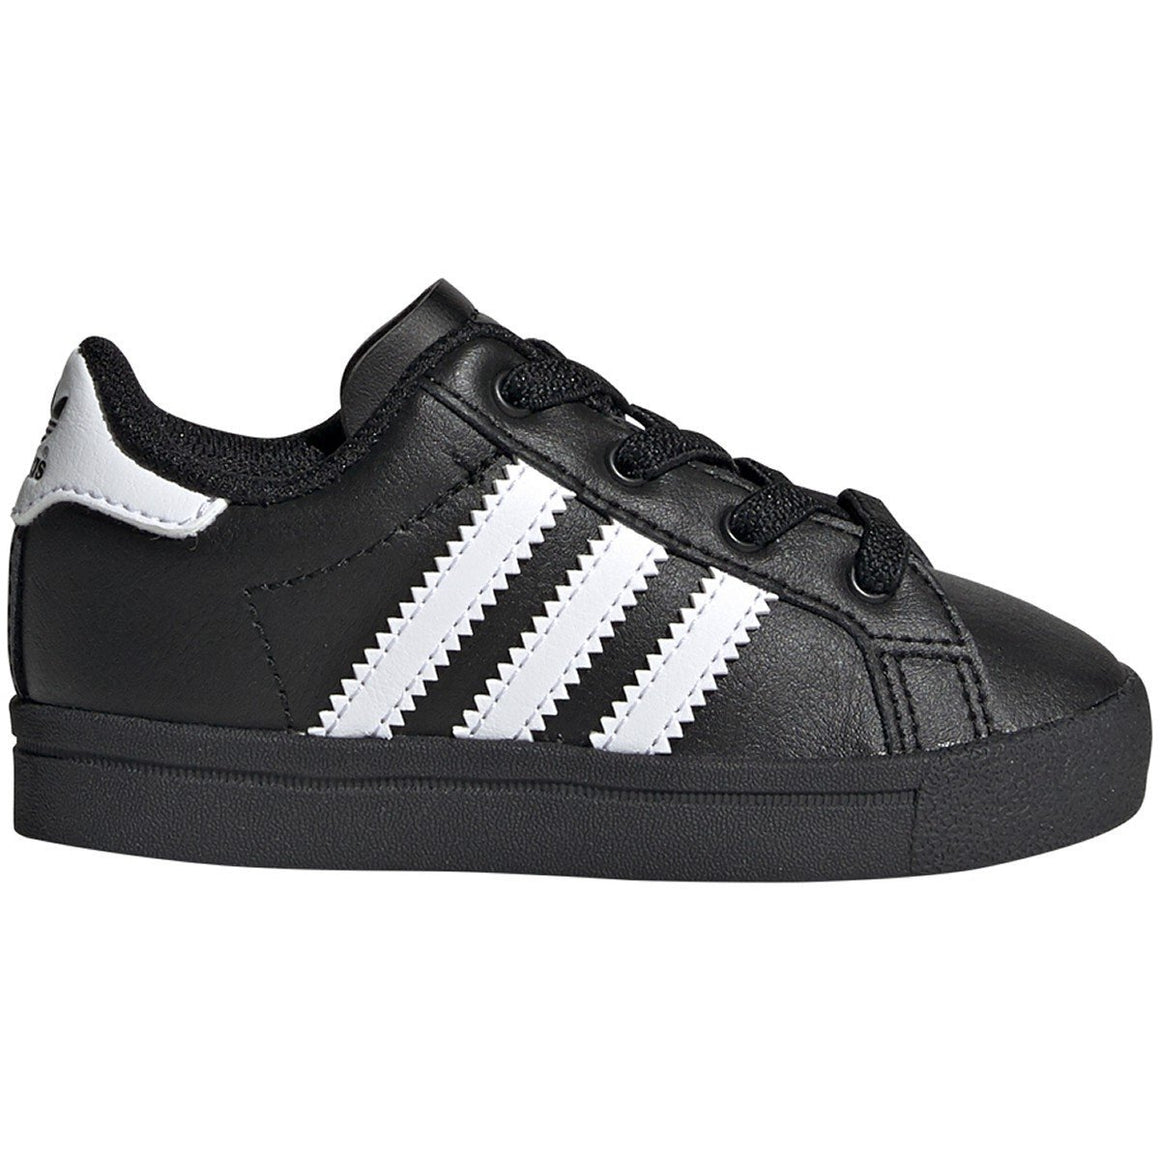 Adidas - EE7505 Coast Star EL I footwear Adidas Toddler 4